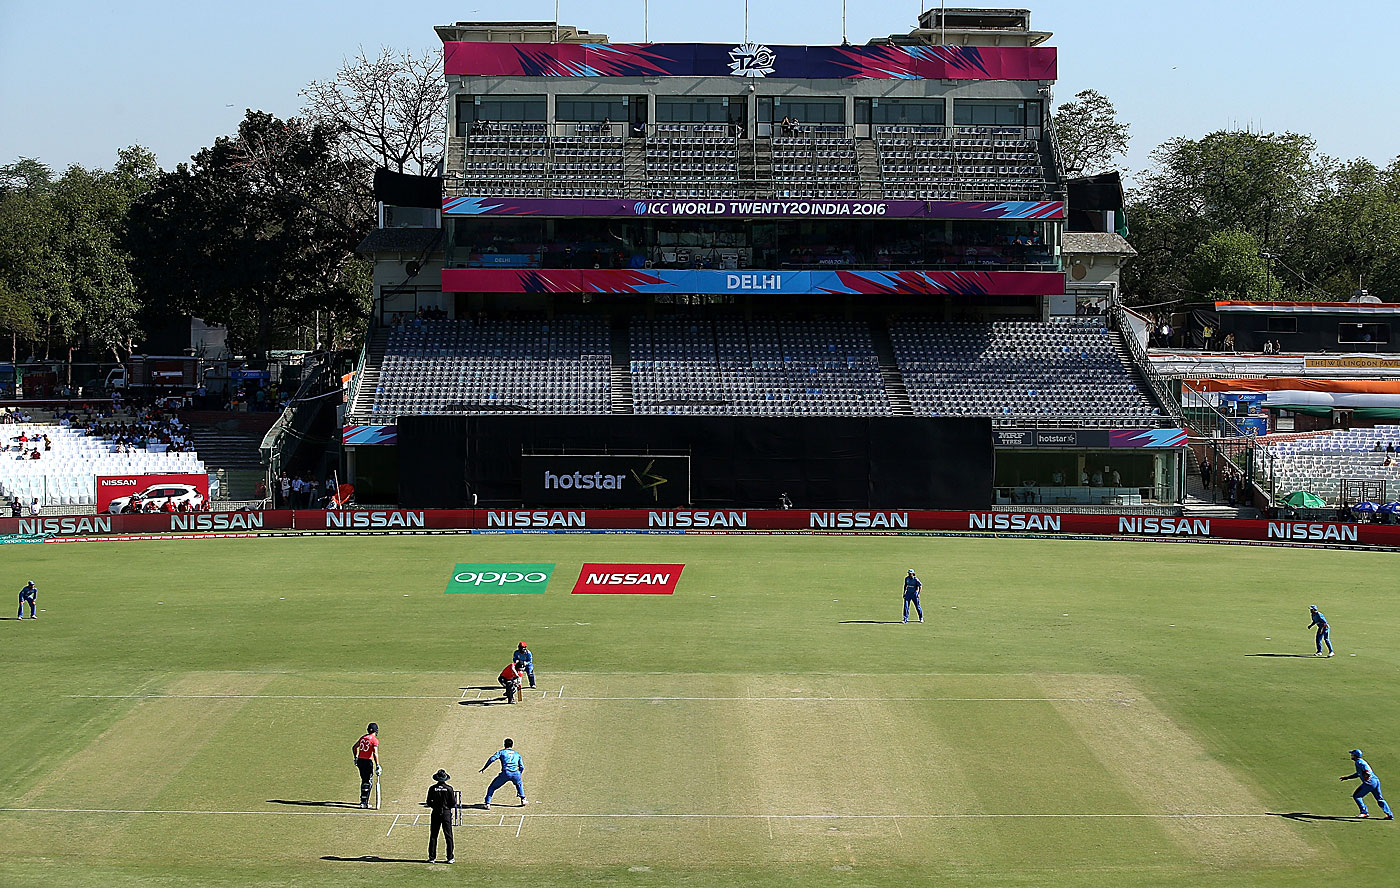 For the three league games of the World T20, all 2000 seats of the RP Mehra Block were unavailable